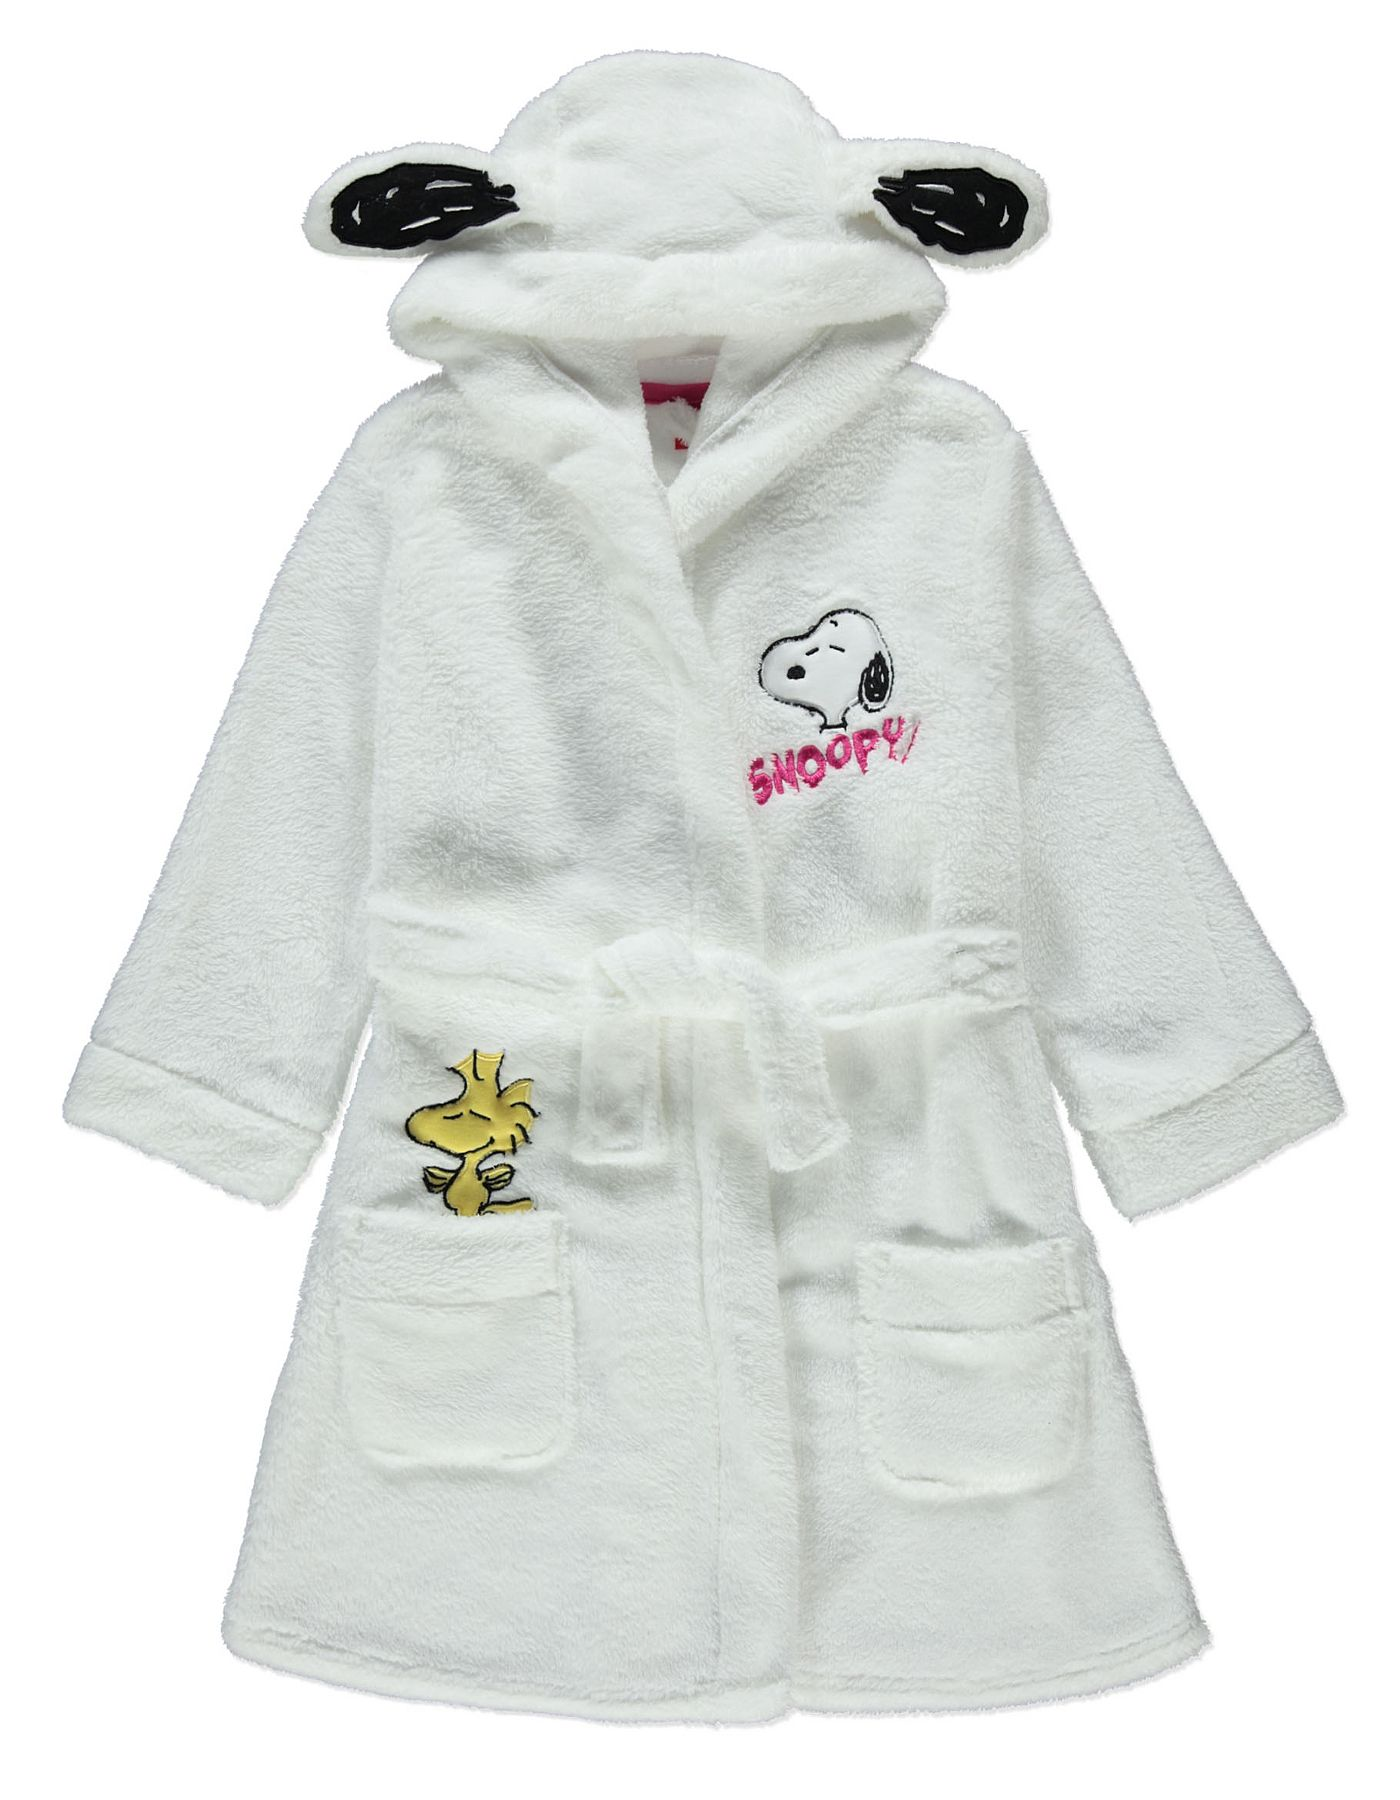 Snoopy Dressing Gown | Kids | George at ASDA | so cute | Pinterest ...